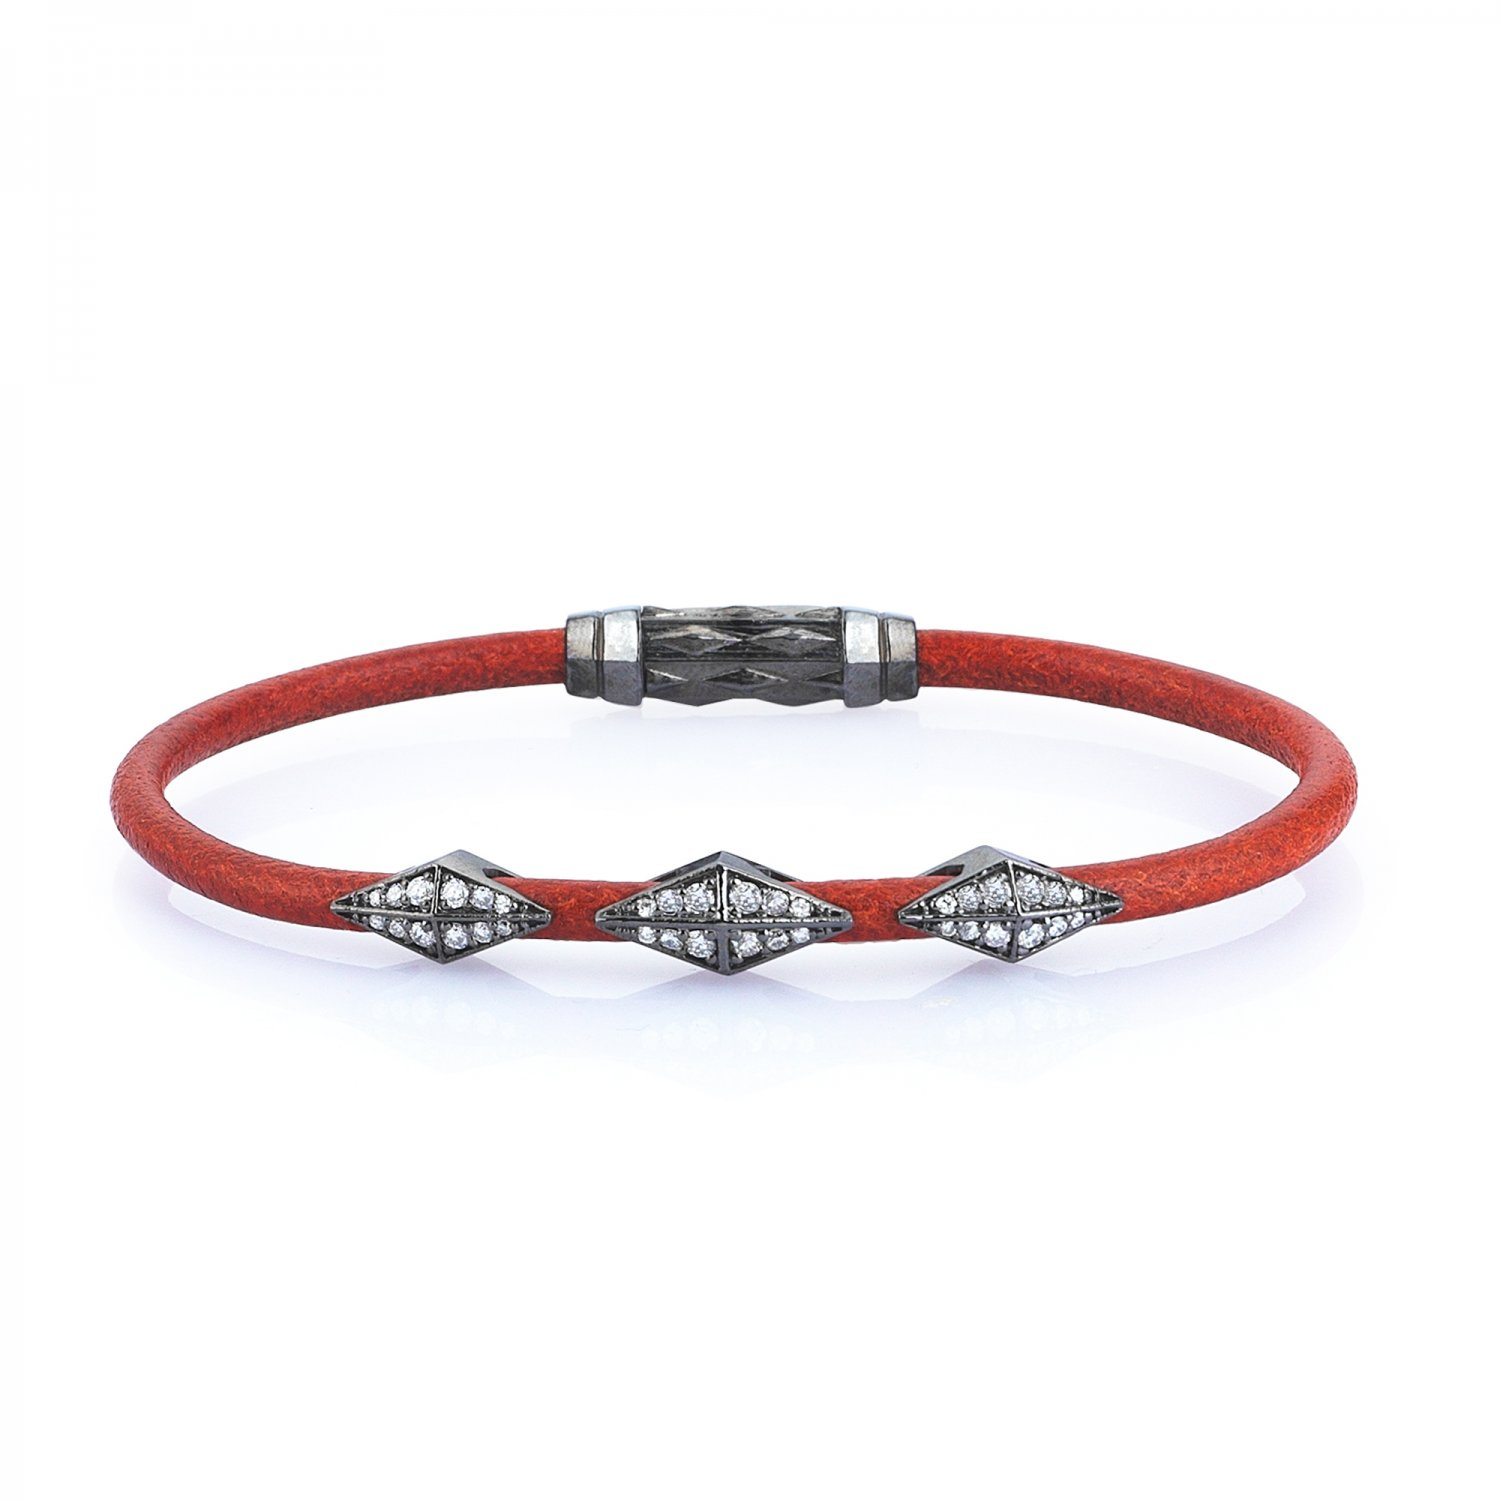 Single Lap Natural Orange Leather Iconic Diamondback Silver Bracelet in Black Rhodium with Full Diamonds